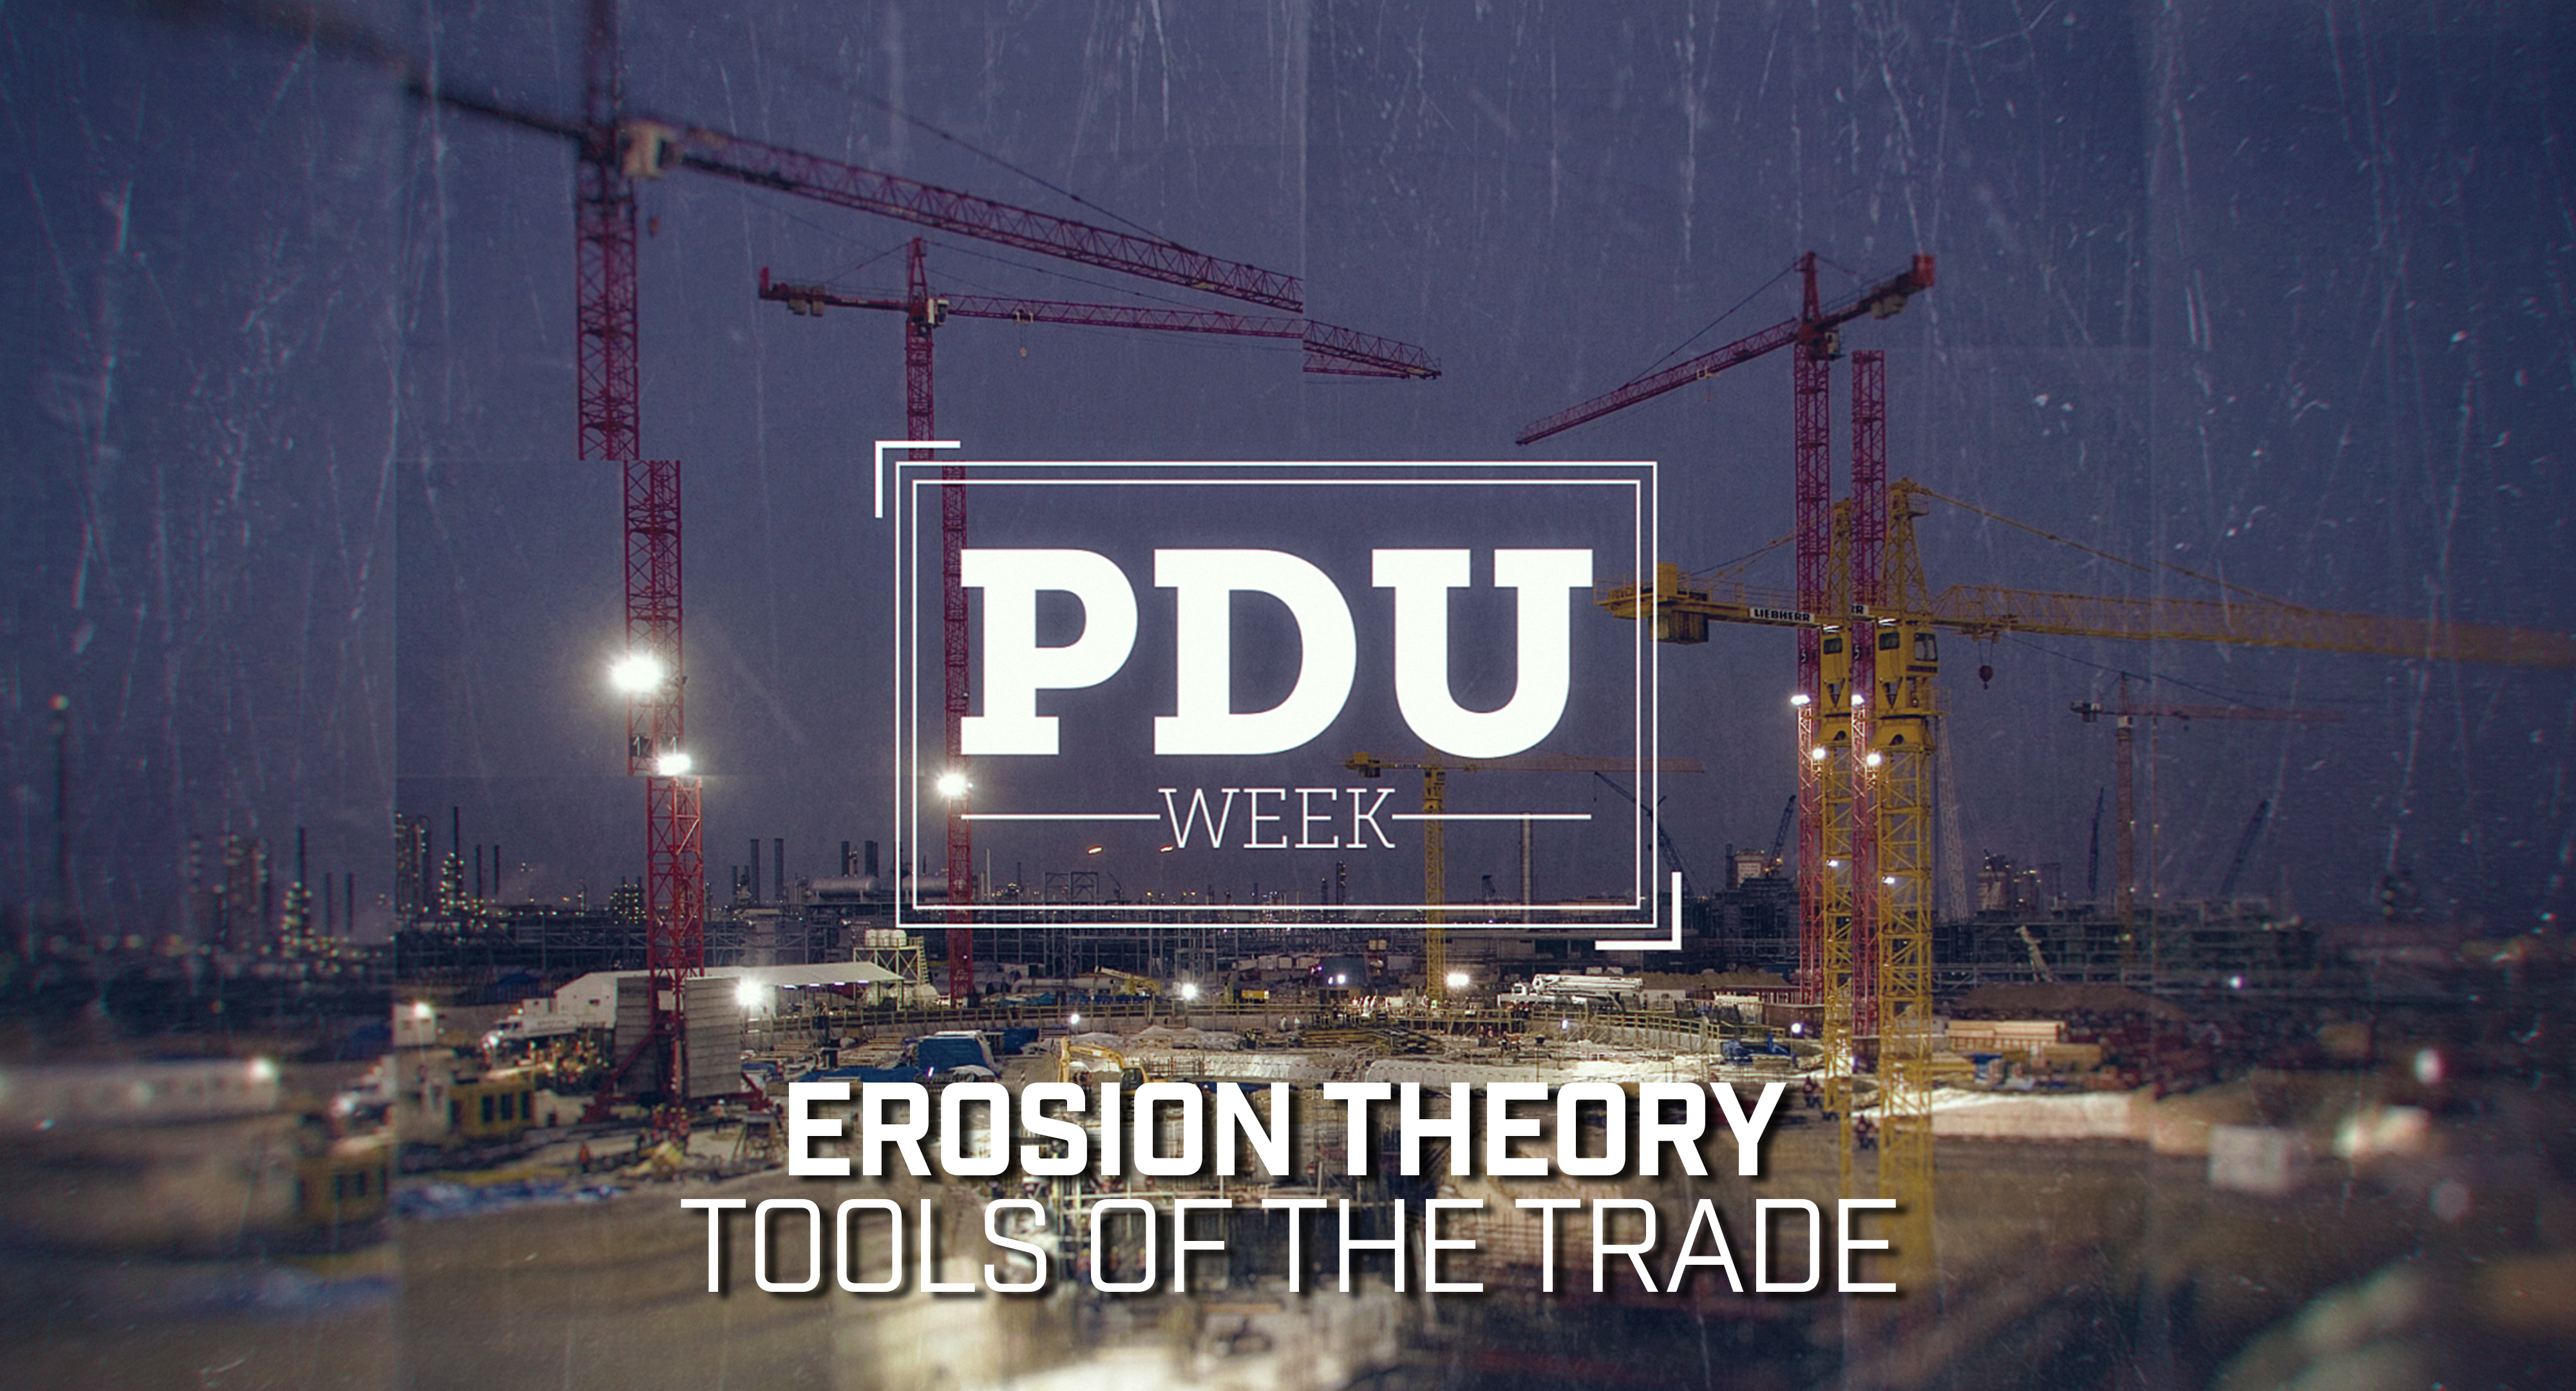 Erosion Theory: Tools of the Trade (PDU Week 2016)